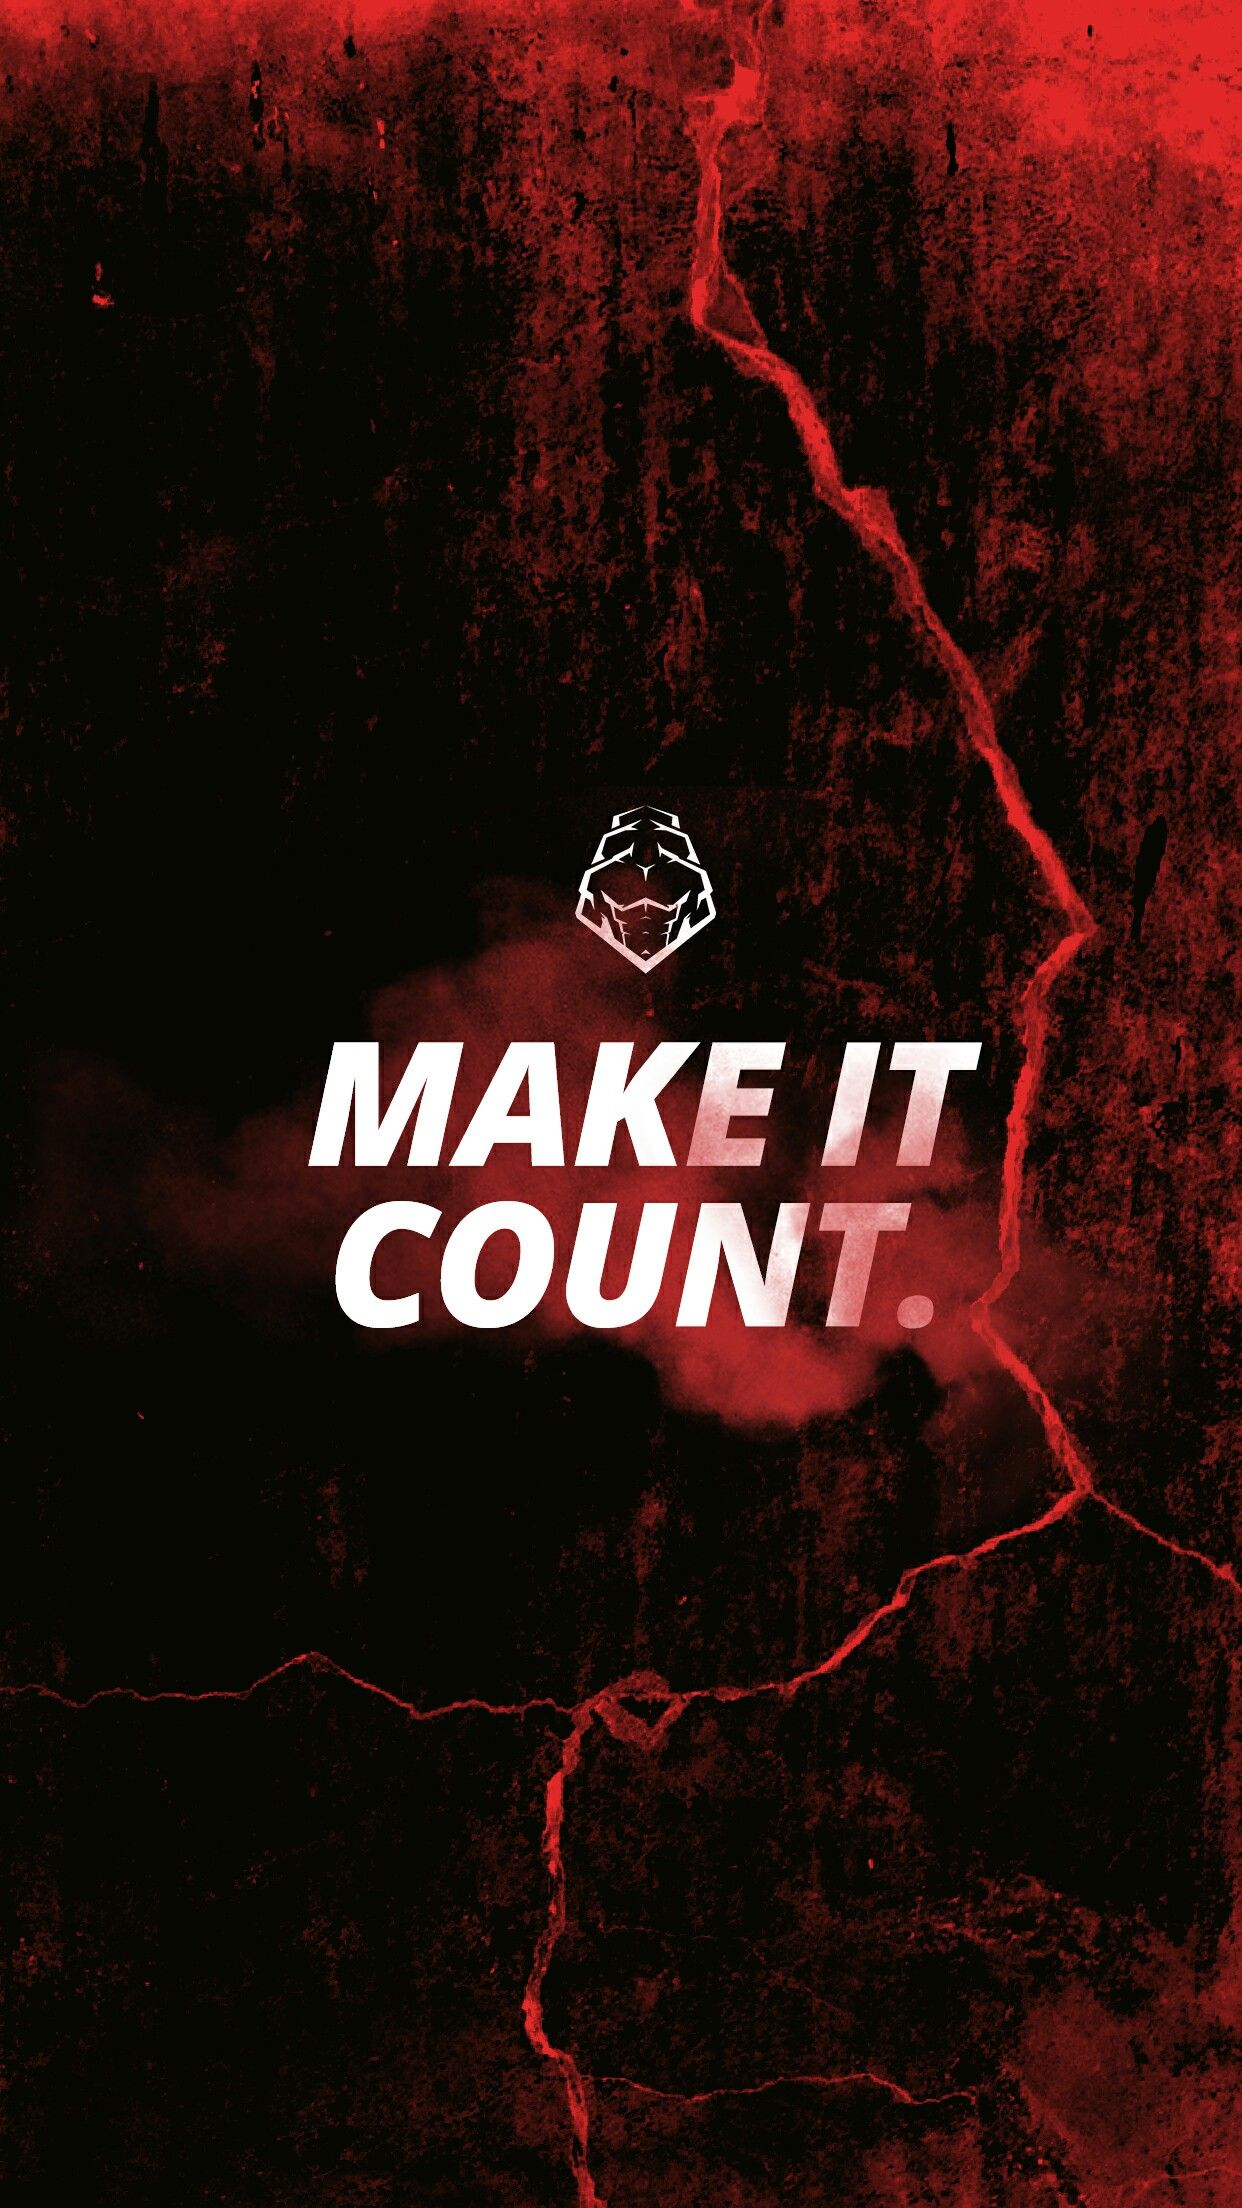 Make it count! Free wallpaper from brendan meyers Neon signs